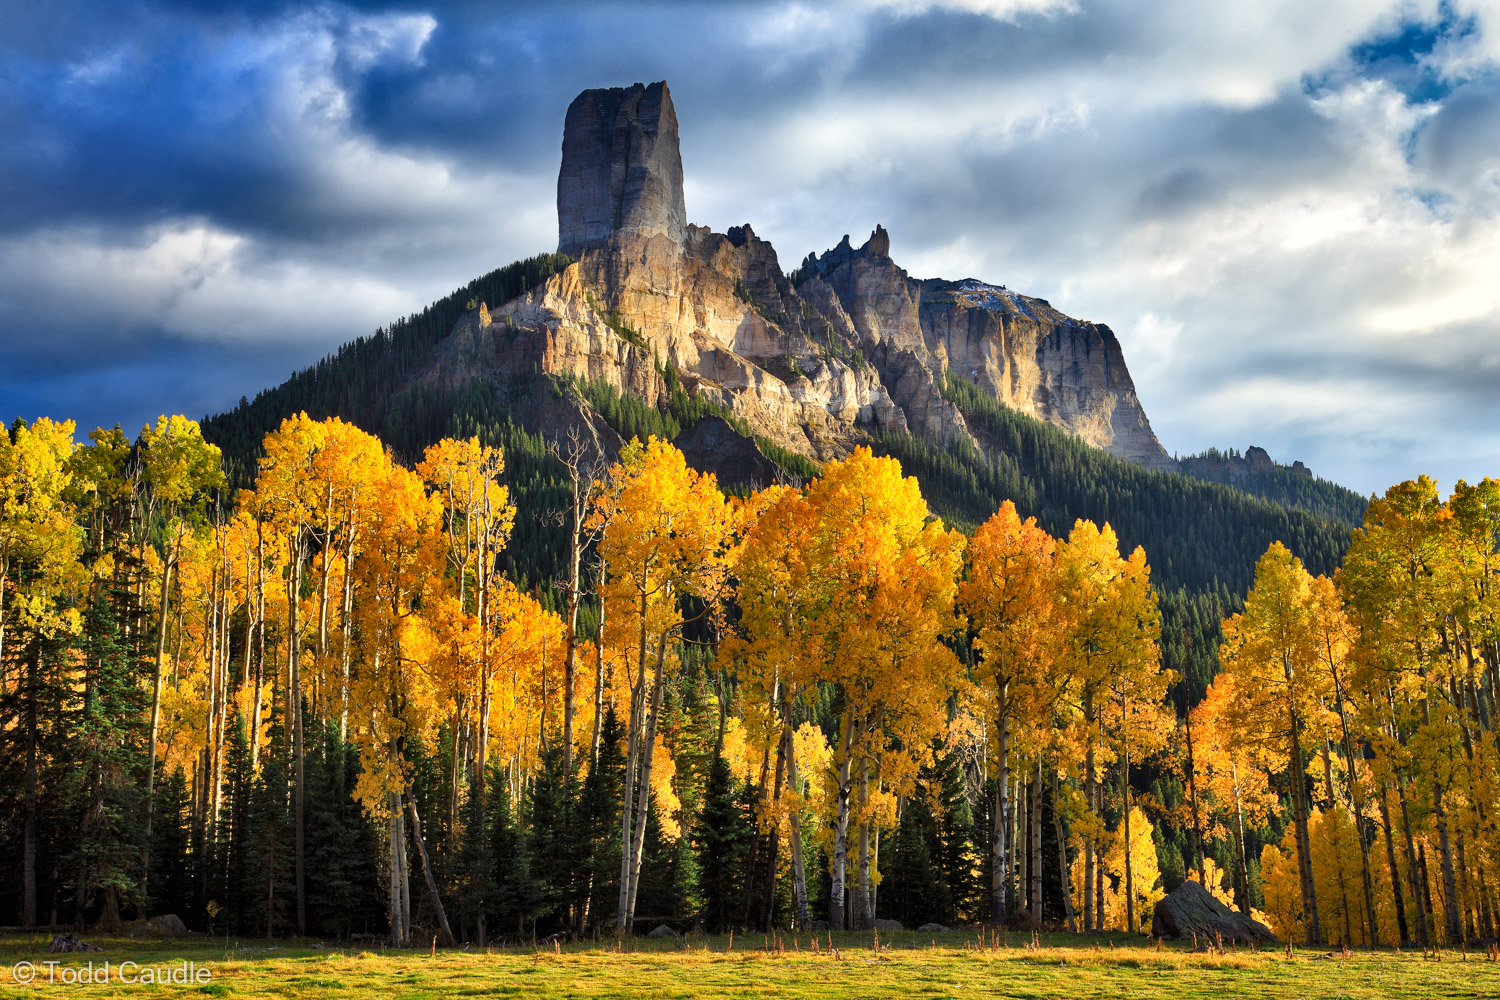 Chimney Rock and Courthouse Mountain rise above a forest of gold aspens and cool pine trees in the Cimarrons. The meadow in the...